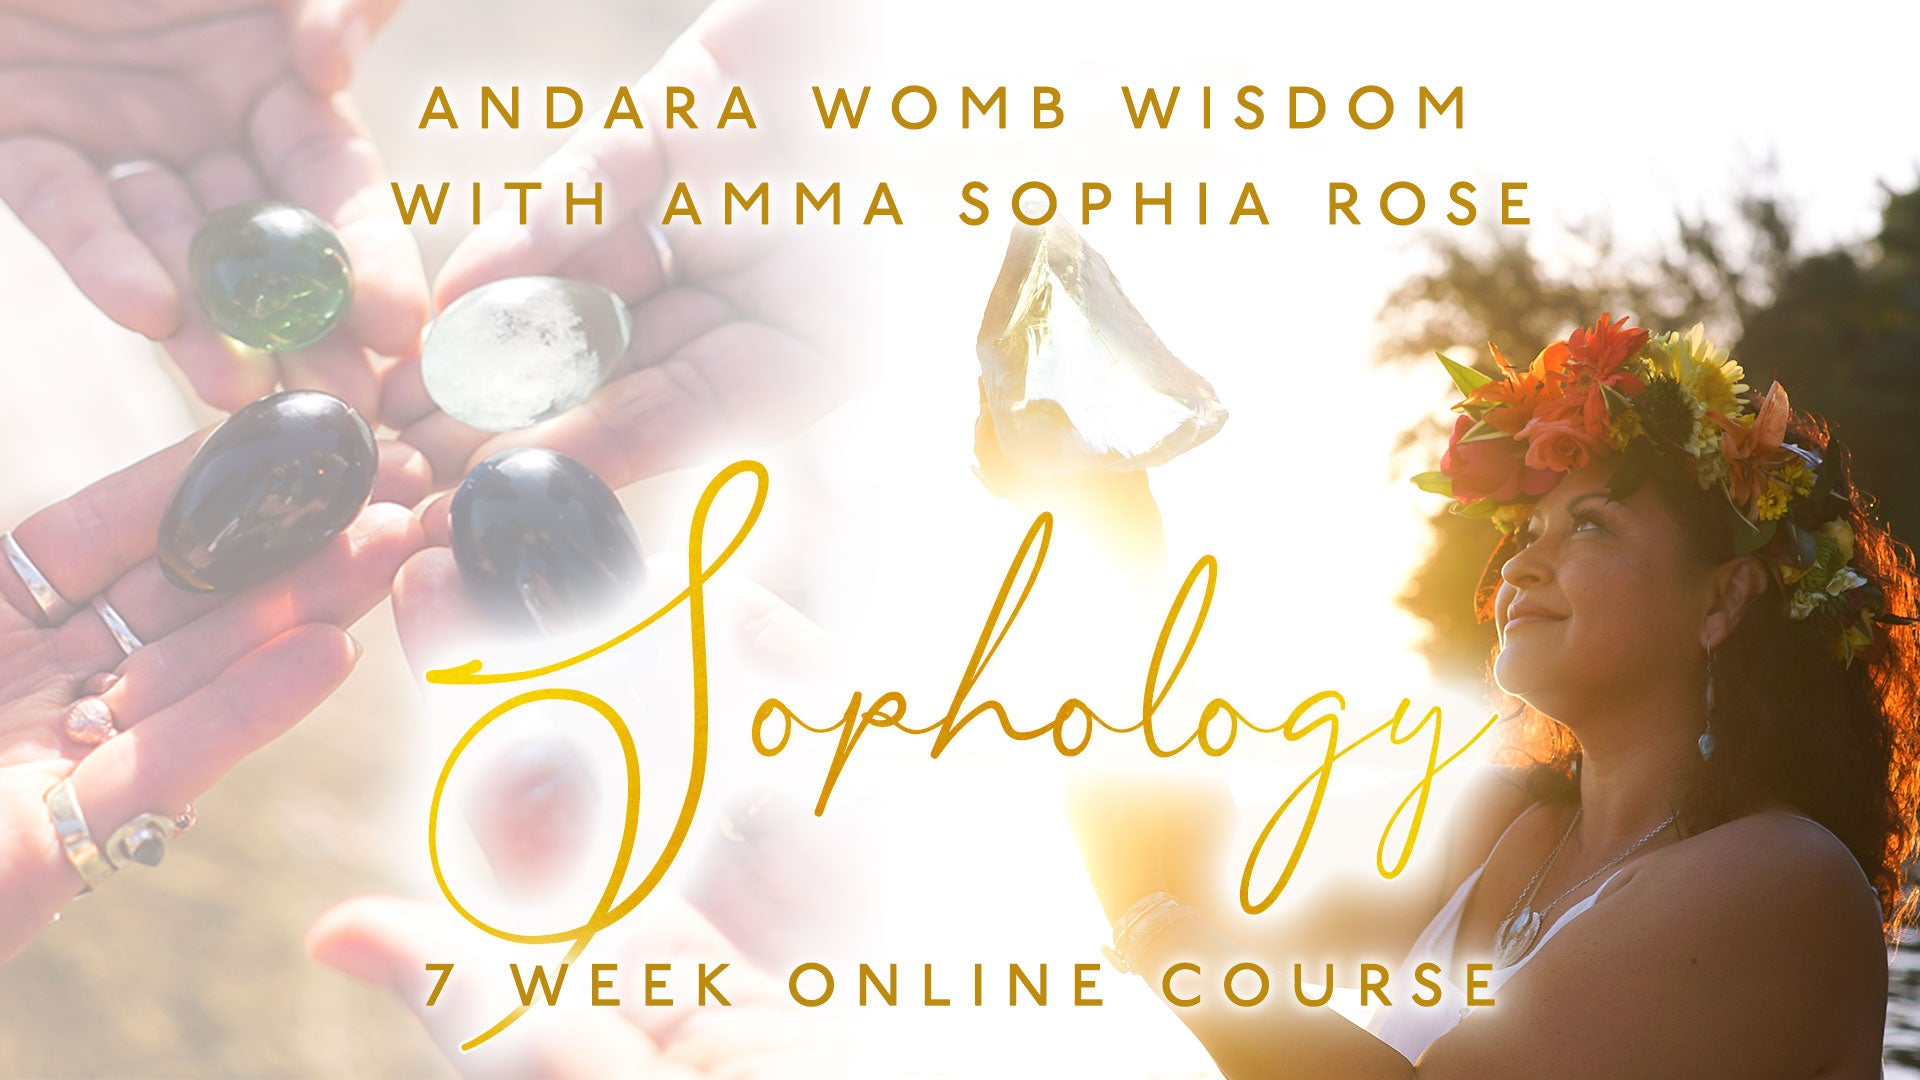 Sophology™ Andara Womb Wisdom Course | 7 Week